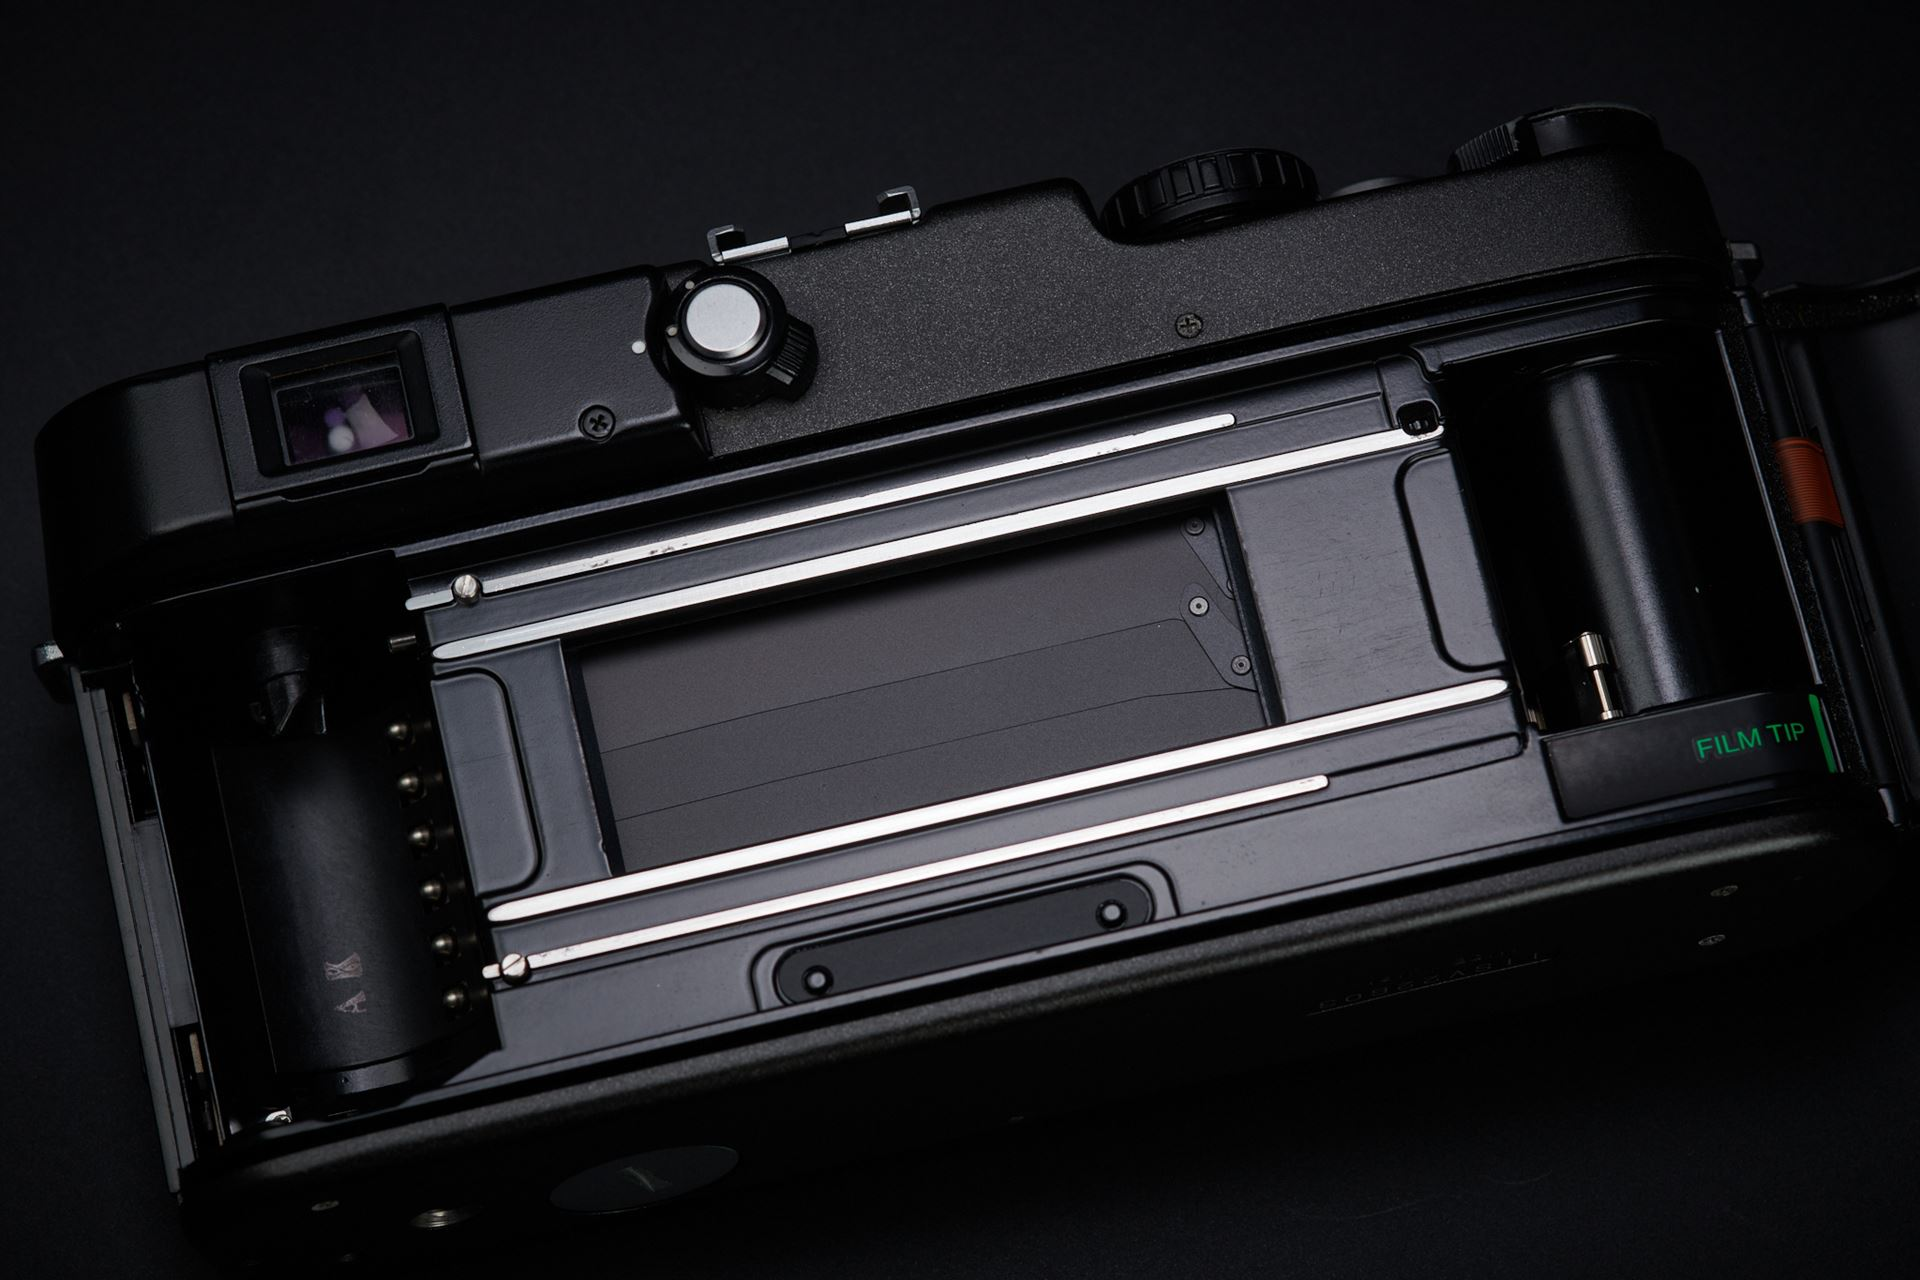 Picture of hasselblad xpan w/ hasselblad 45mm f/4